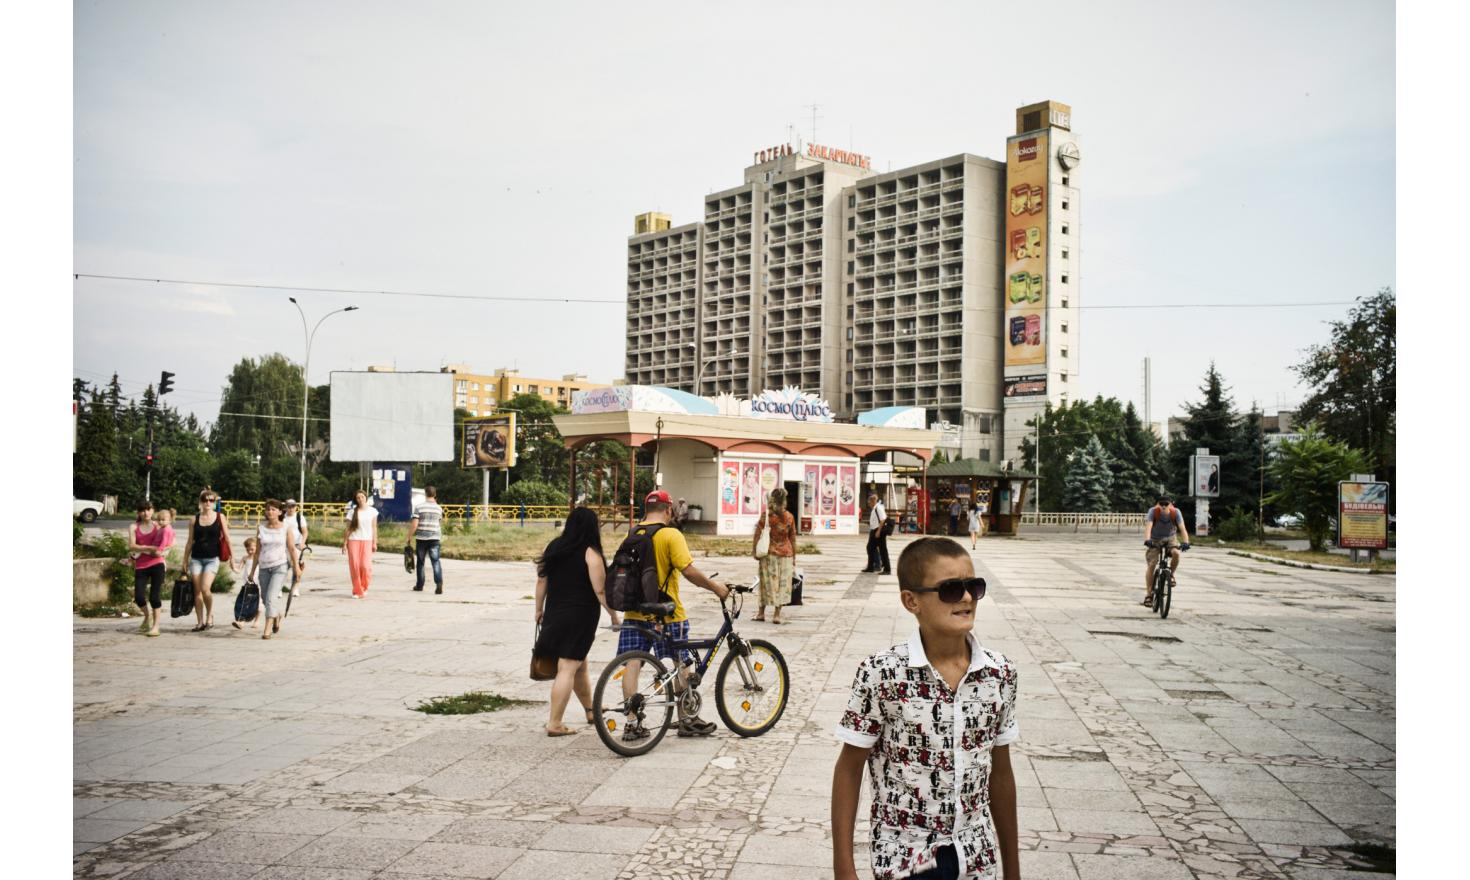 Oujhorod, in a hotel that has been forced to accept the refugees from war zone. The rent costs them 80 euros per month, in a country where the minimum wage is 38 euros. The number of displaced ukrainiens is more than 2 million.